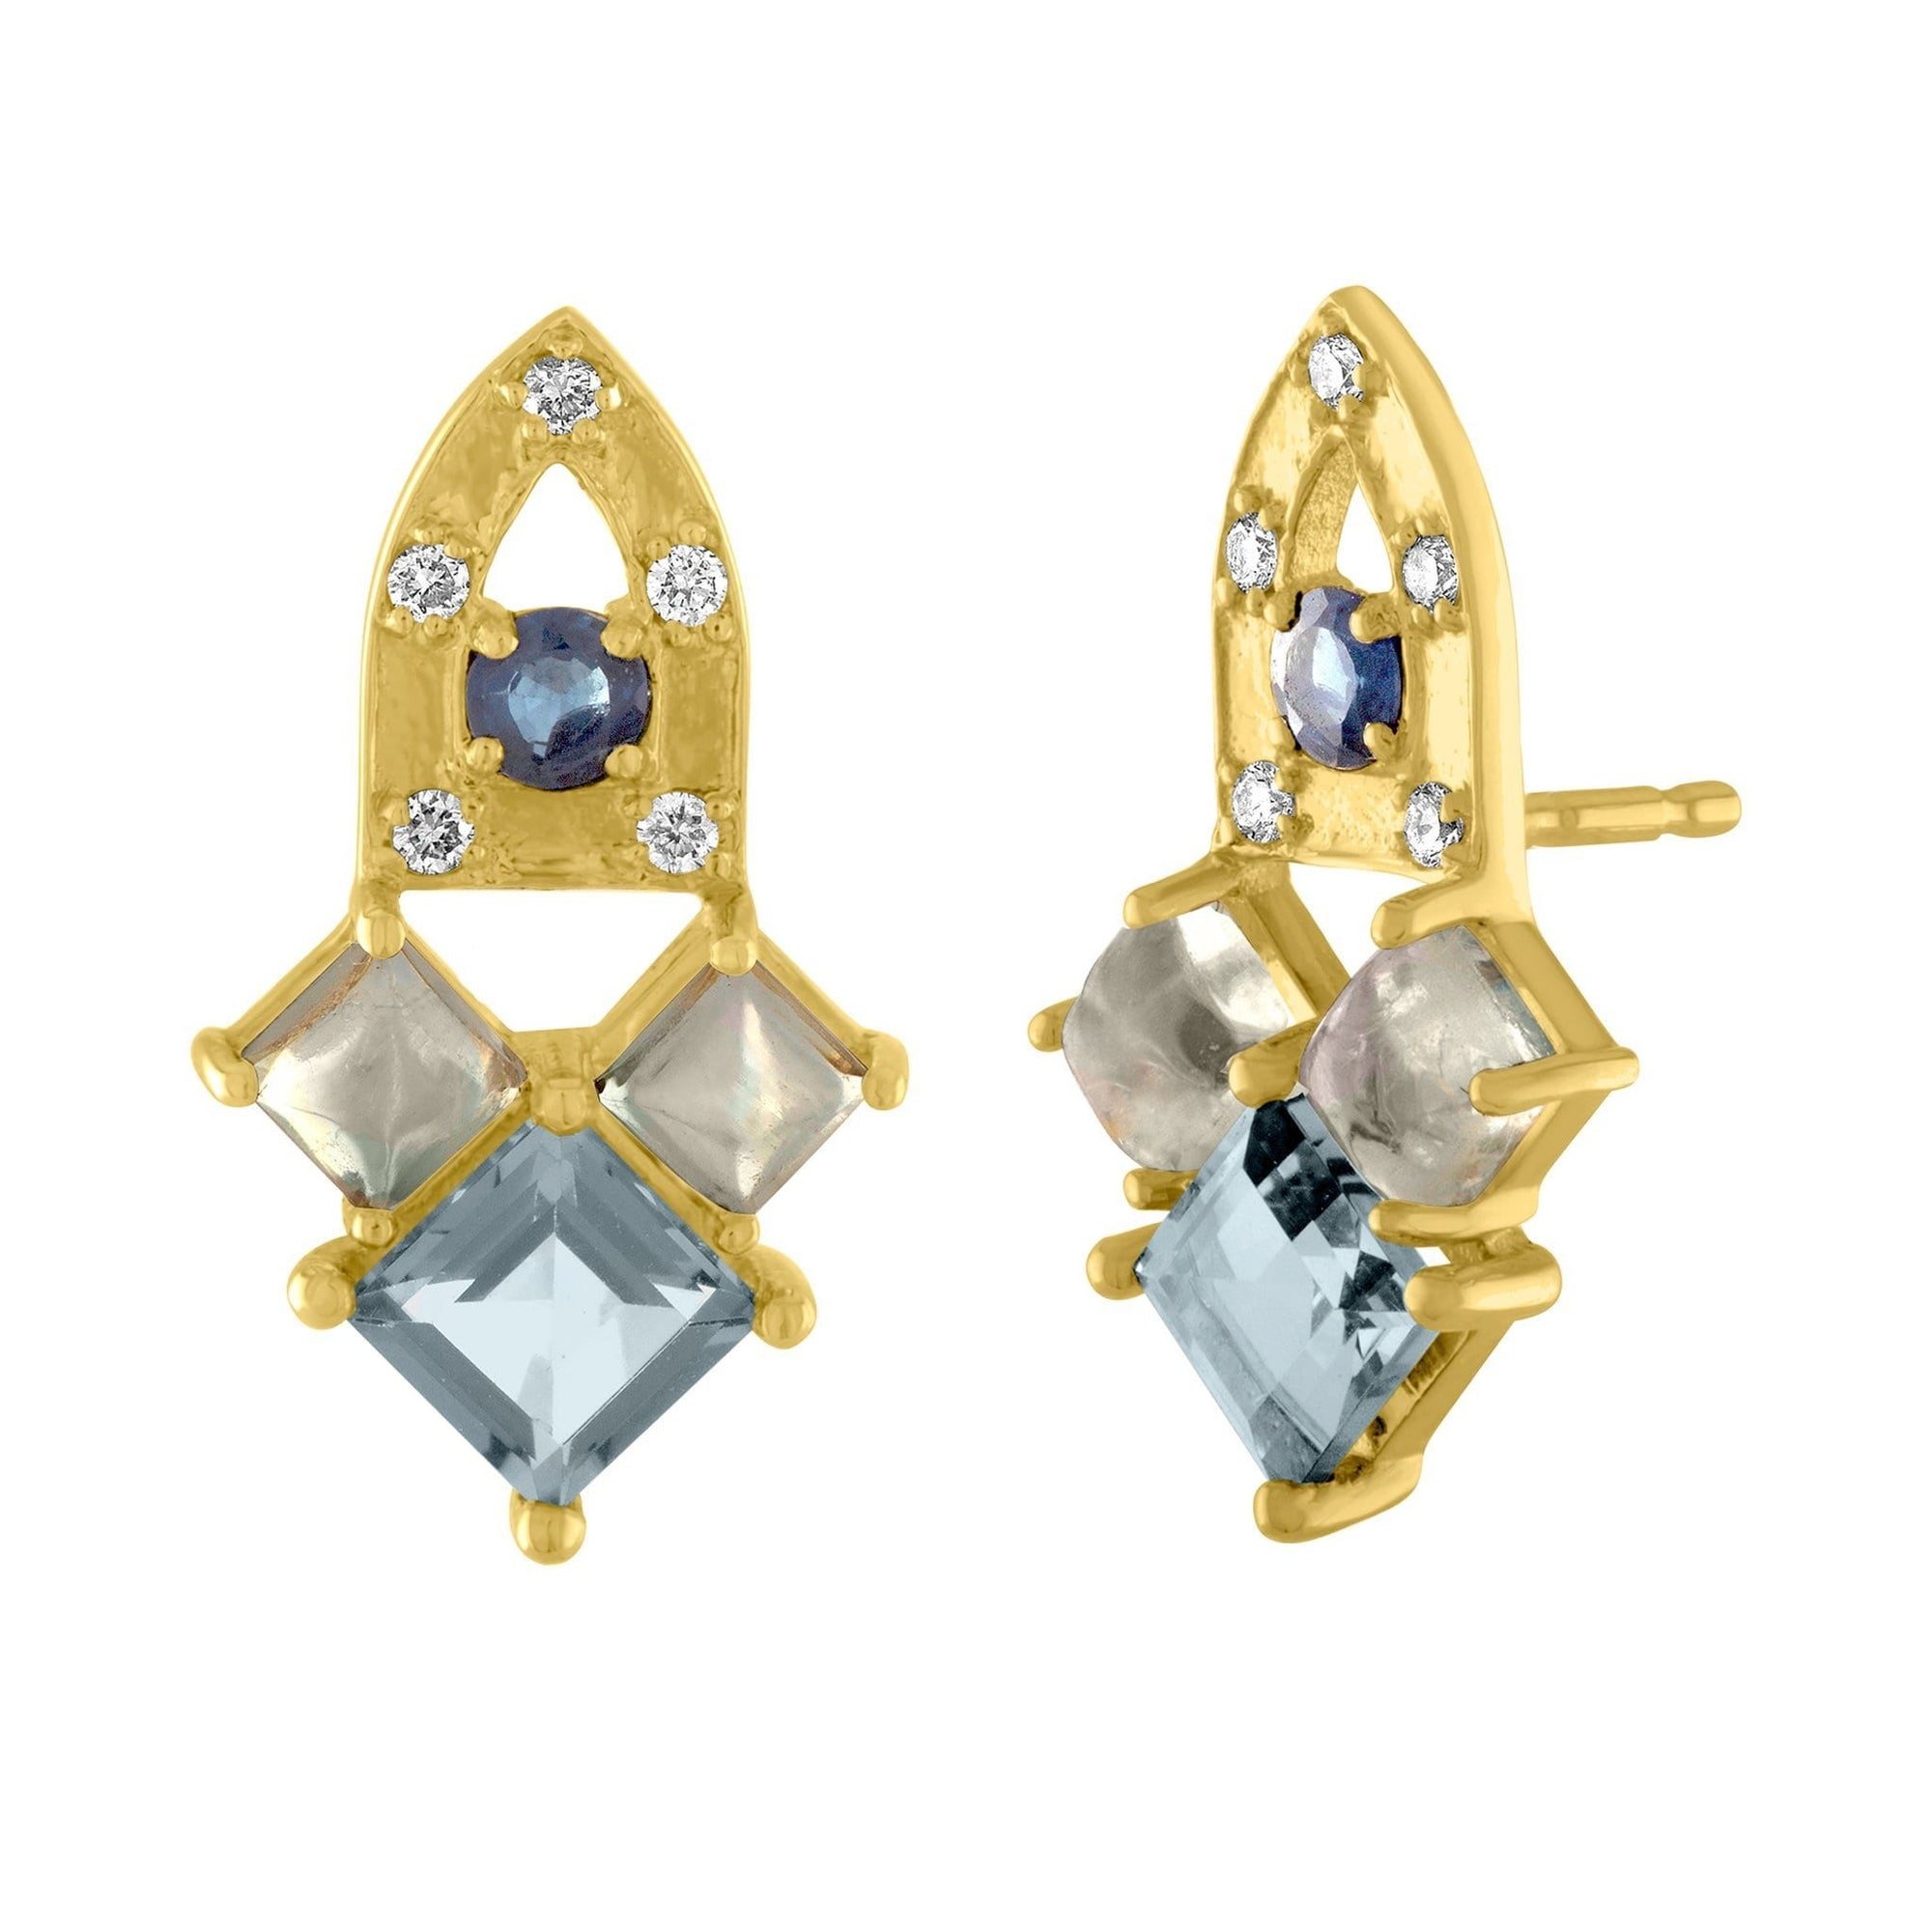 Arch Stud Earrings: 14k Gold, Blue Aapphire, London Blue Topaz, Moonstone, Diamonds